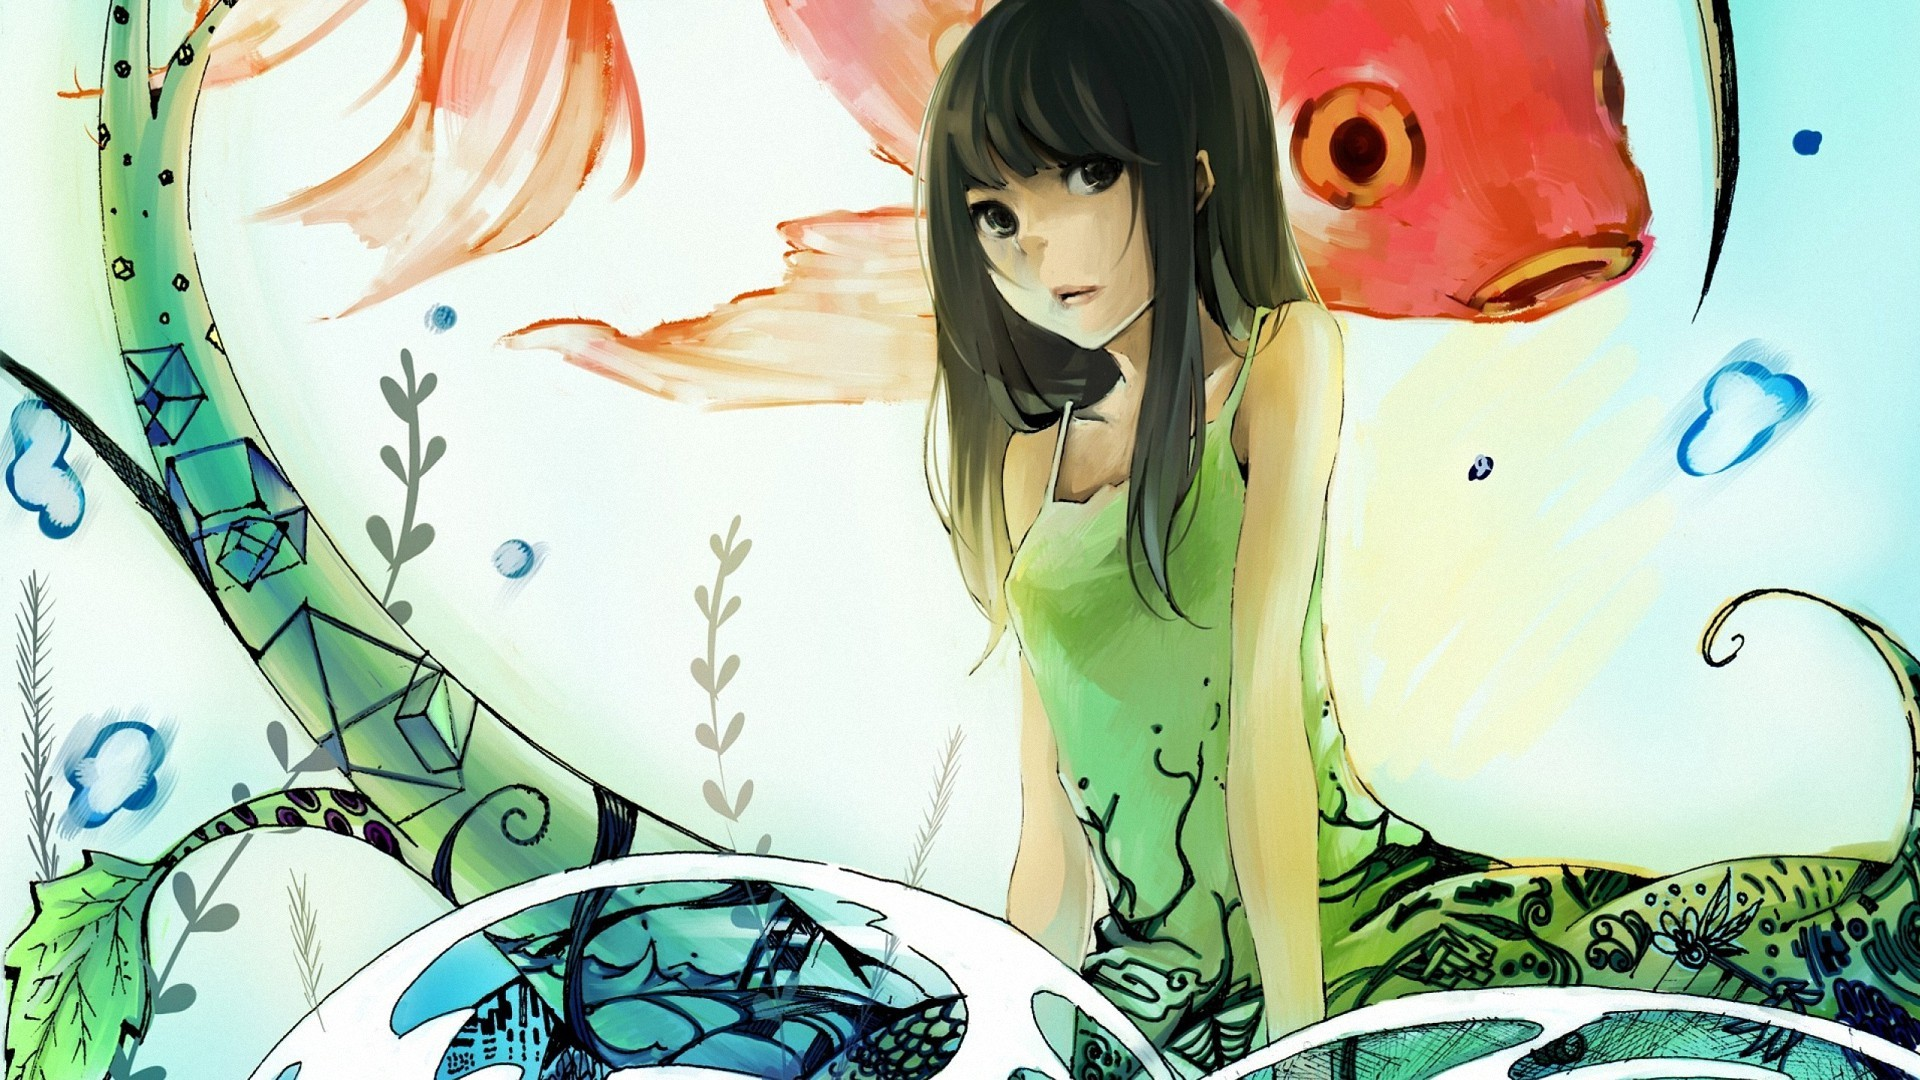 Cute Anime Girl & Fishes desktop PC and Mac wallpaper